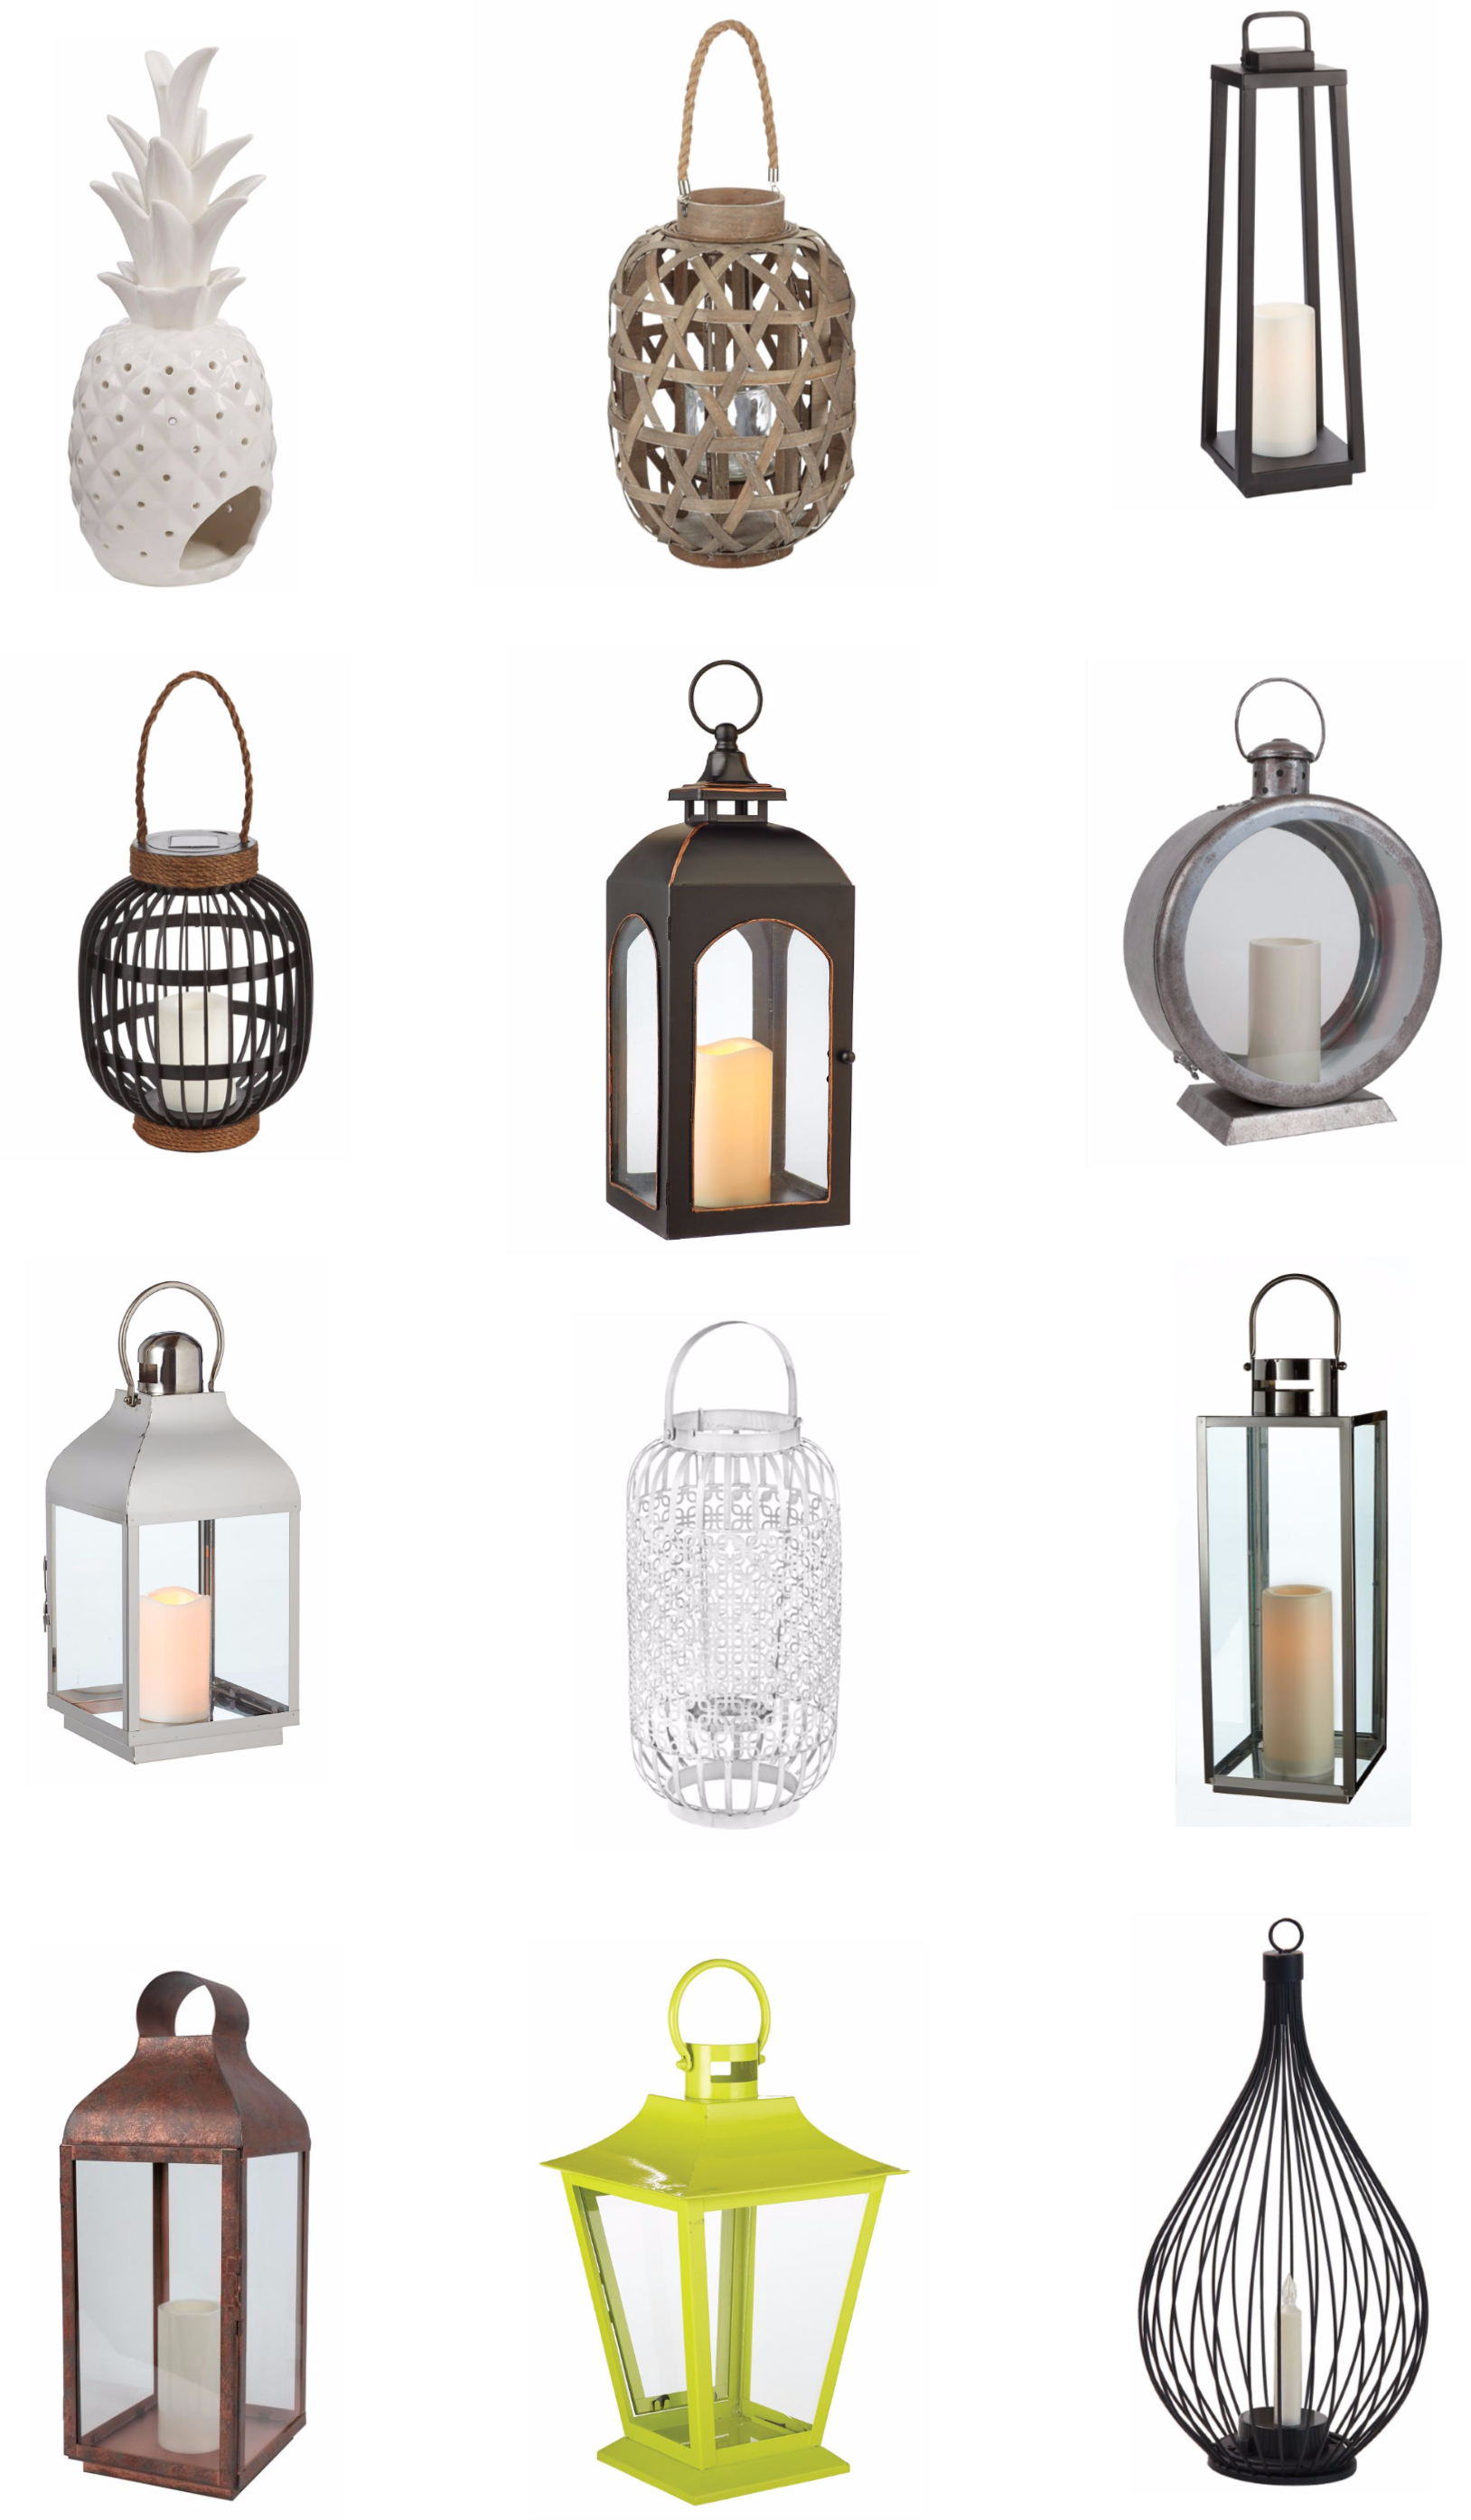 ... Was Singing His Iconic Song. So While Kim Goes And Mixes Up Some More  Lemonade, Take A Look At These Pretty Lanterns To Light Up Your Patio This  Summer.